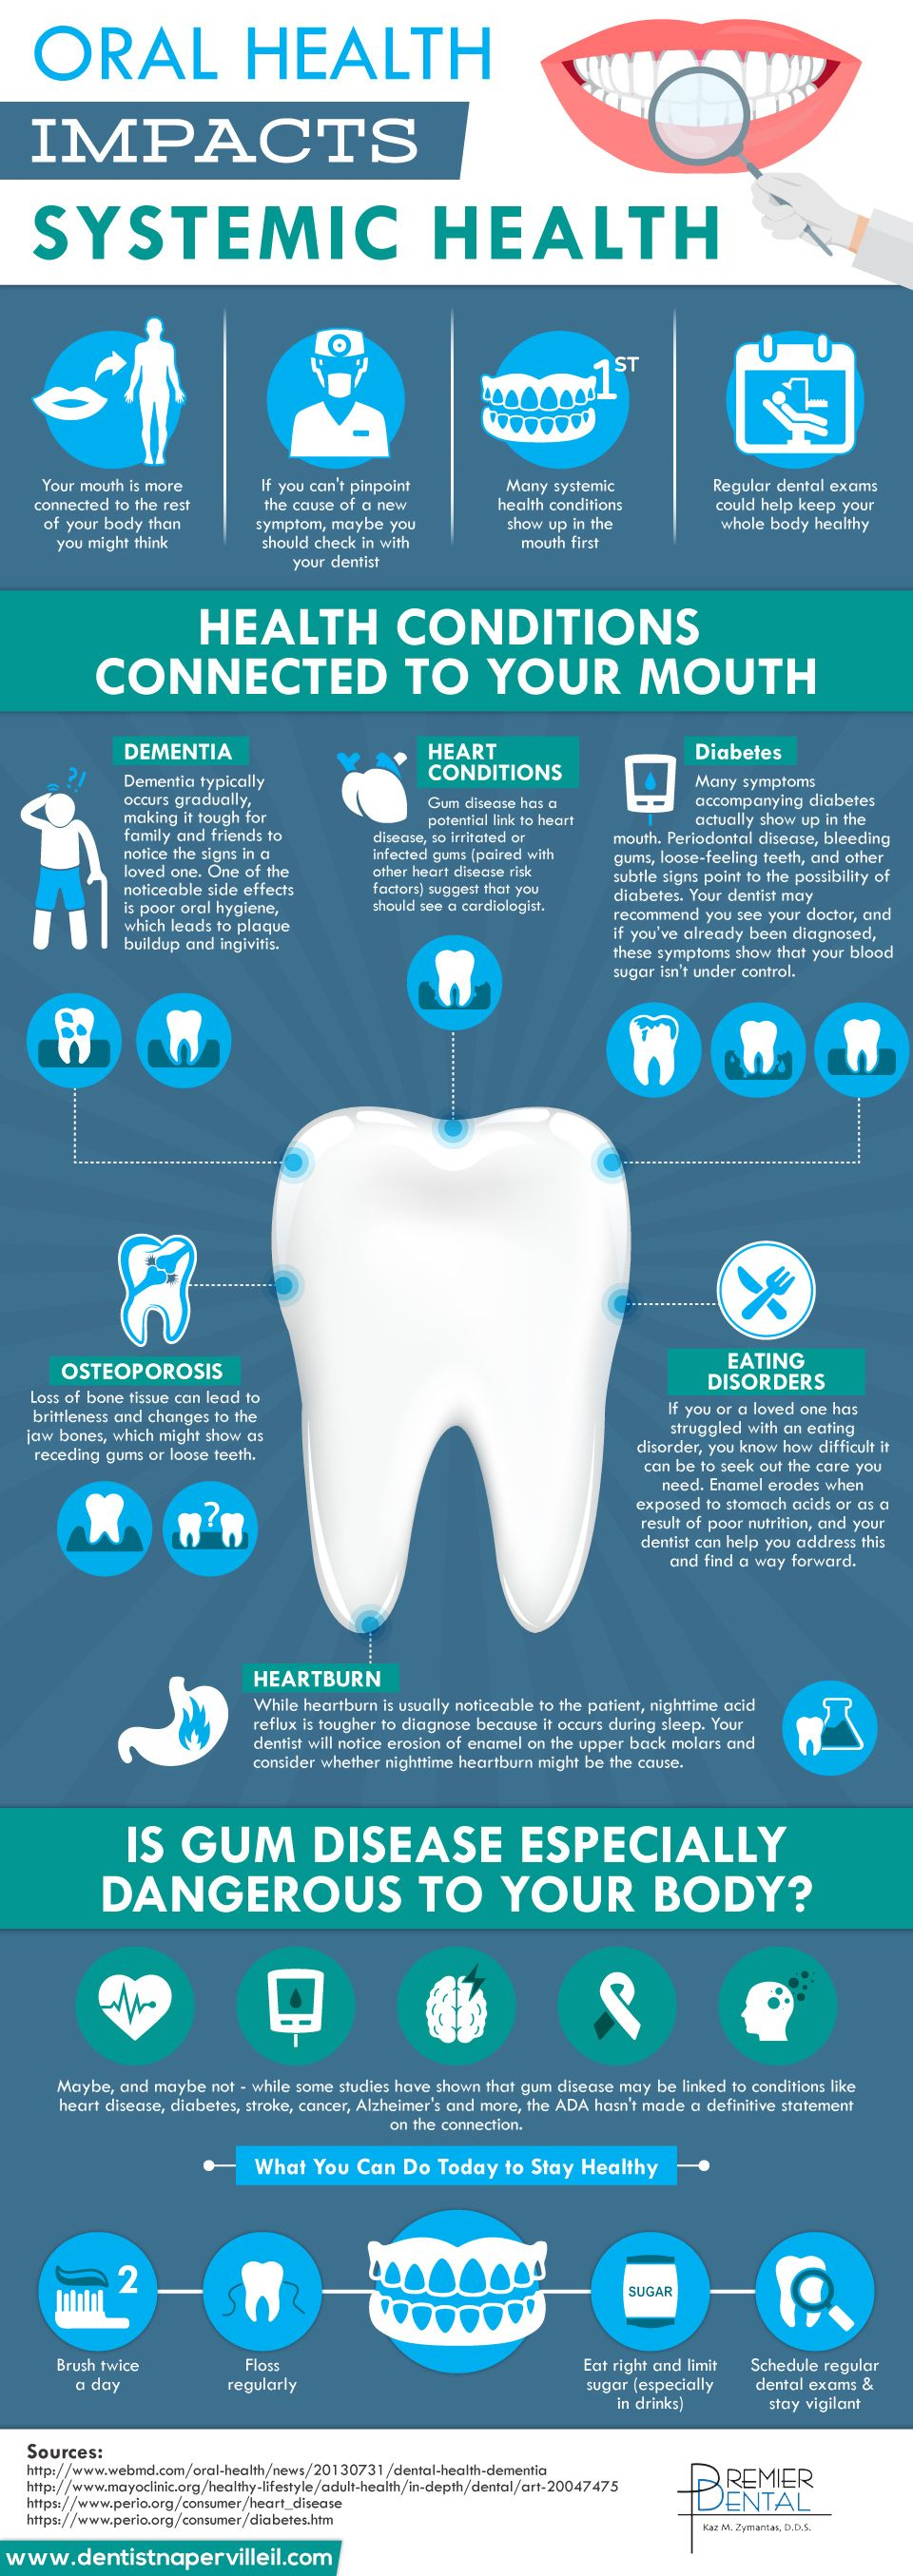 Gum disease and heart disease may be more connected than